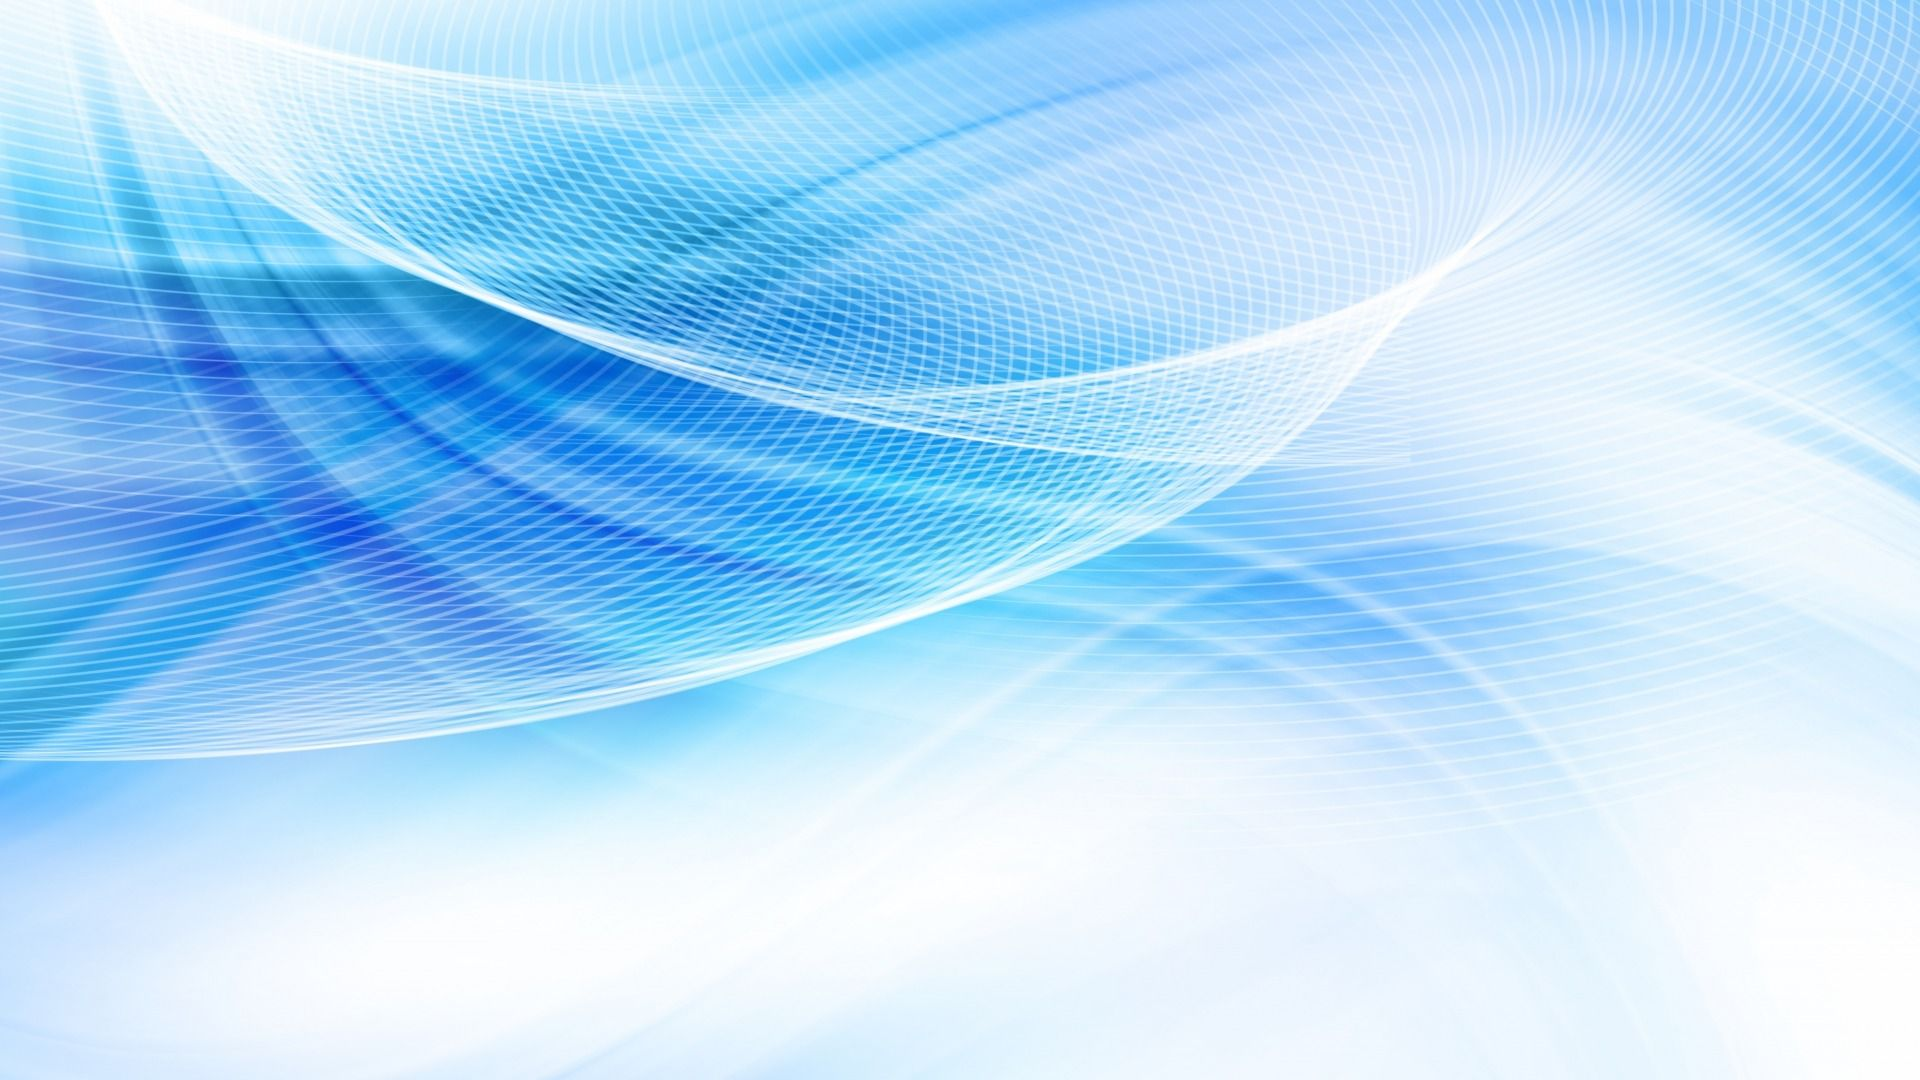 The Background For Presentation Abstract, Blue Abstract